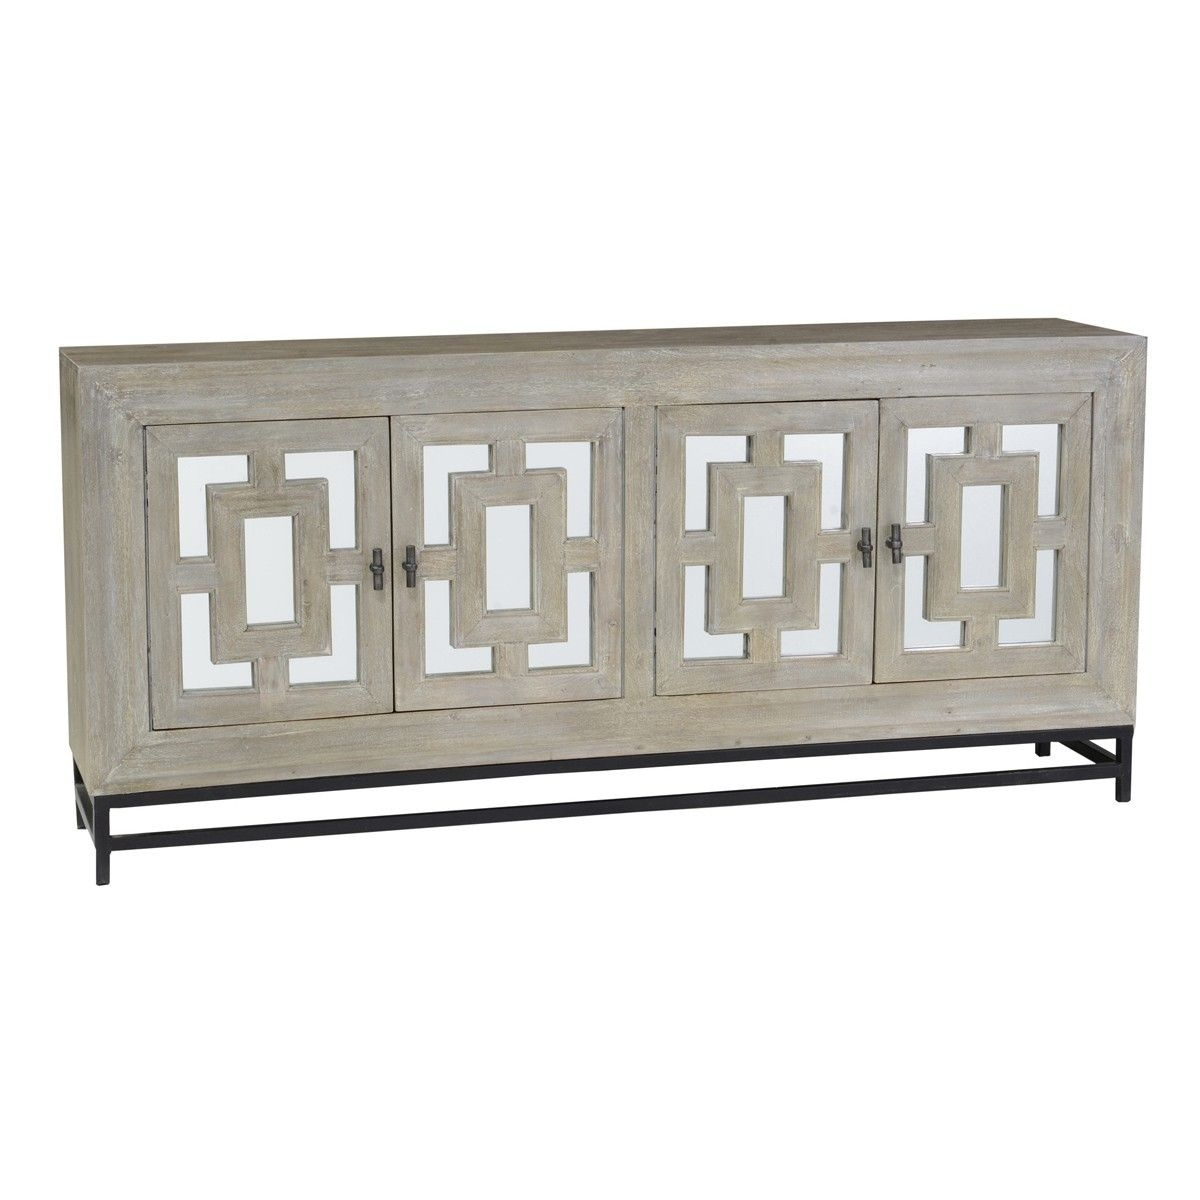 Marabella 4 Door Mirrored Wood Buffet Sideboard | Pinterest | Buffet in Aged Mirrored 4 Door Sideboards (Image 24 of 30)